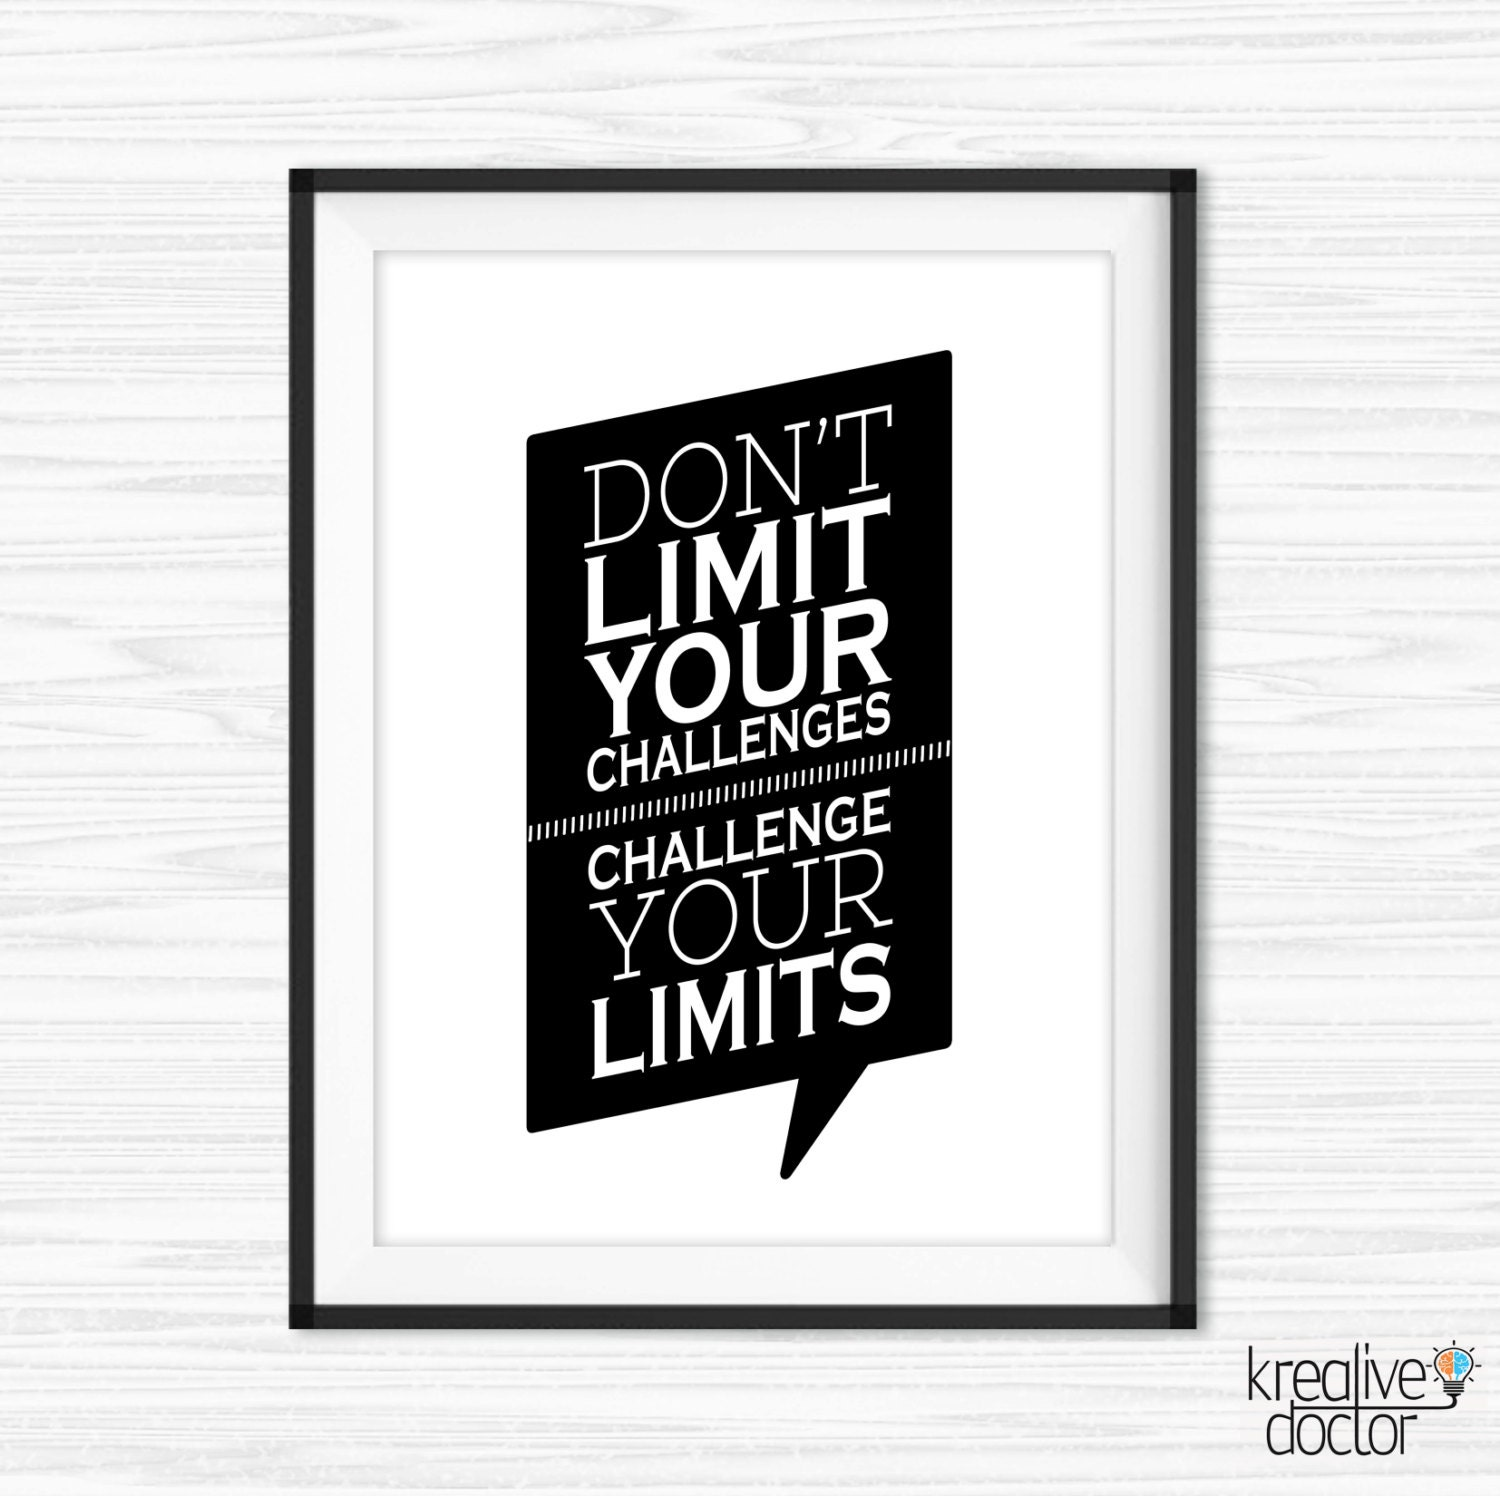 Wall Art For Your Office : Office wall art challenge your limits quote cubicle decor